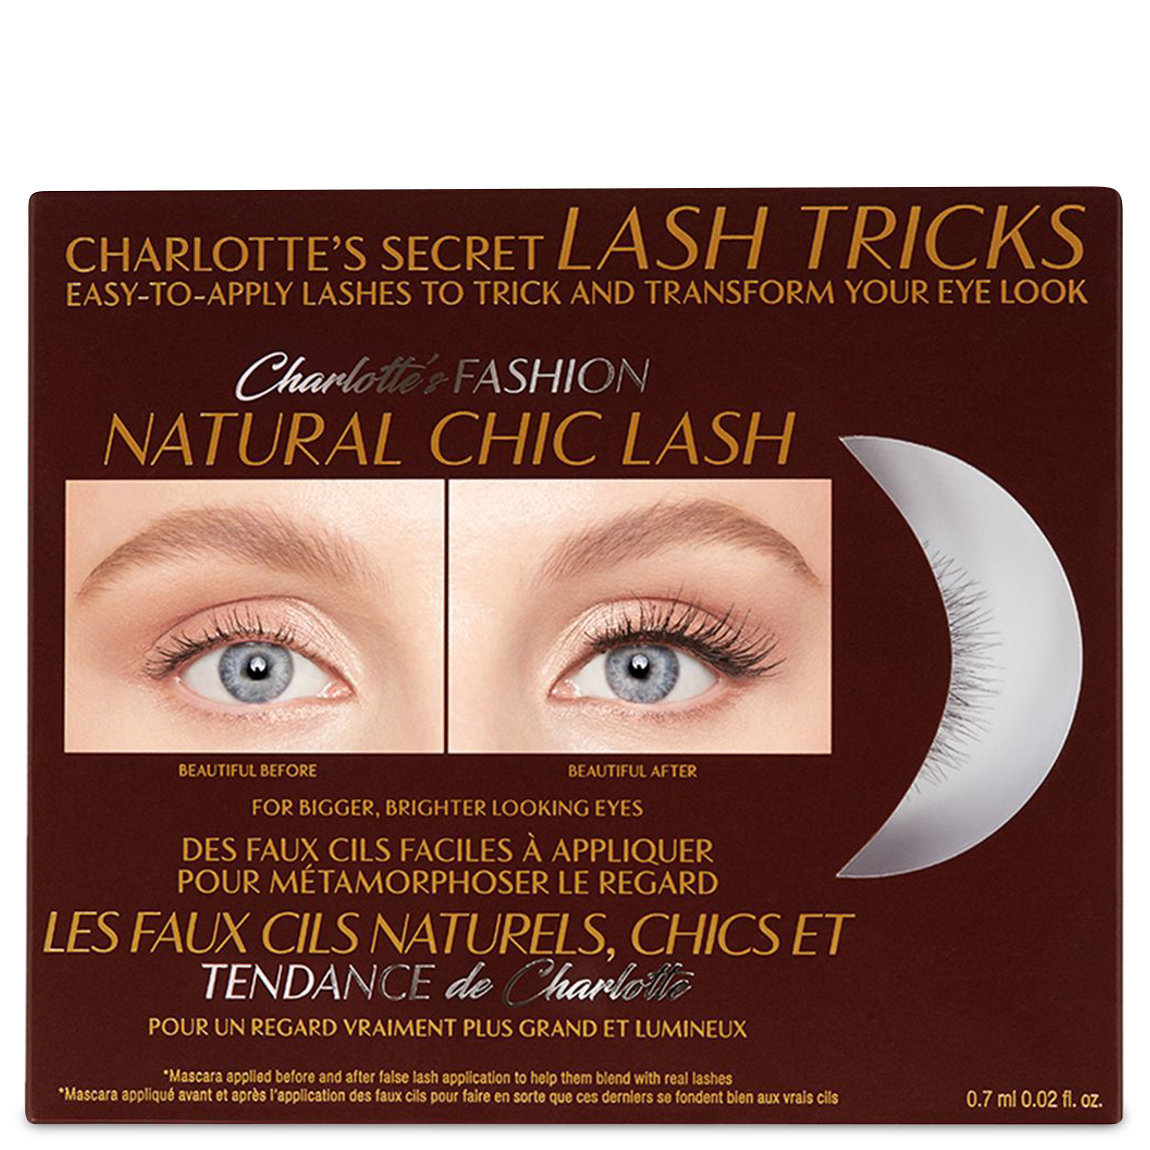 Charlotte Tilbury Charlotte's Secret Lash Tricks Fashion Natural Chic Lash